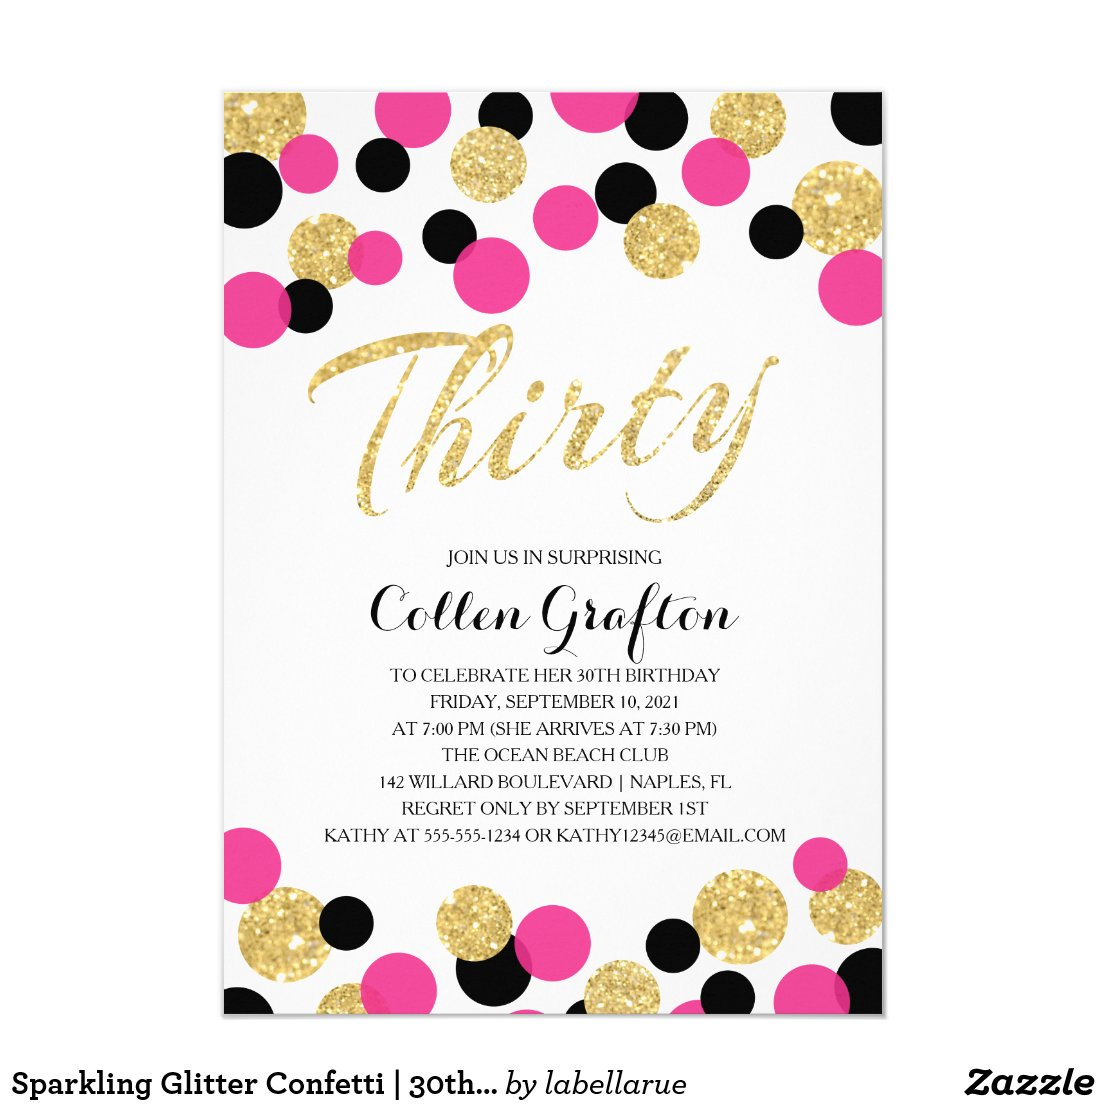 Sparkling Glitter Confetti | 30th Birthday Invitation